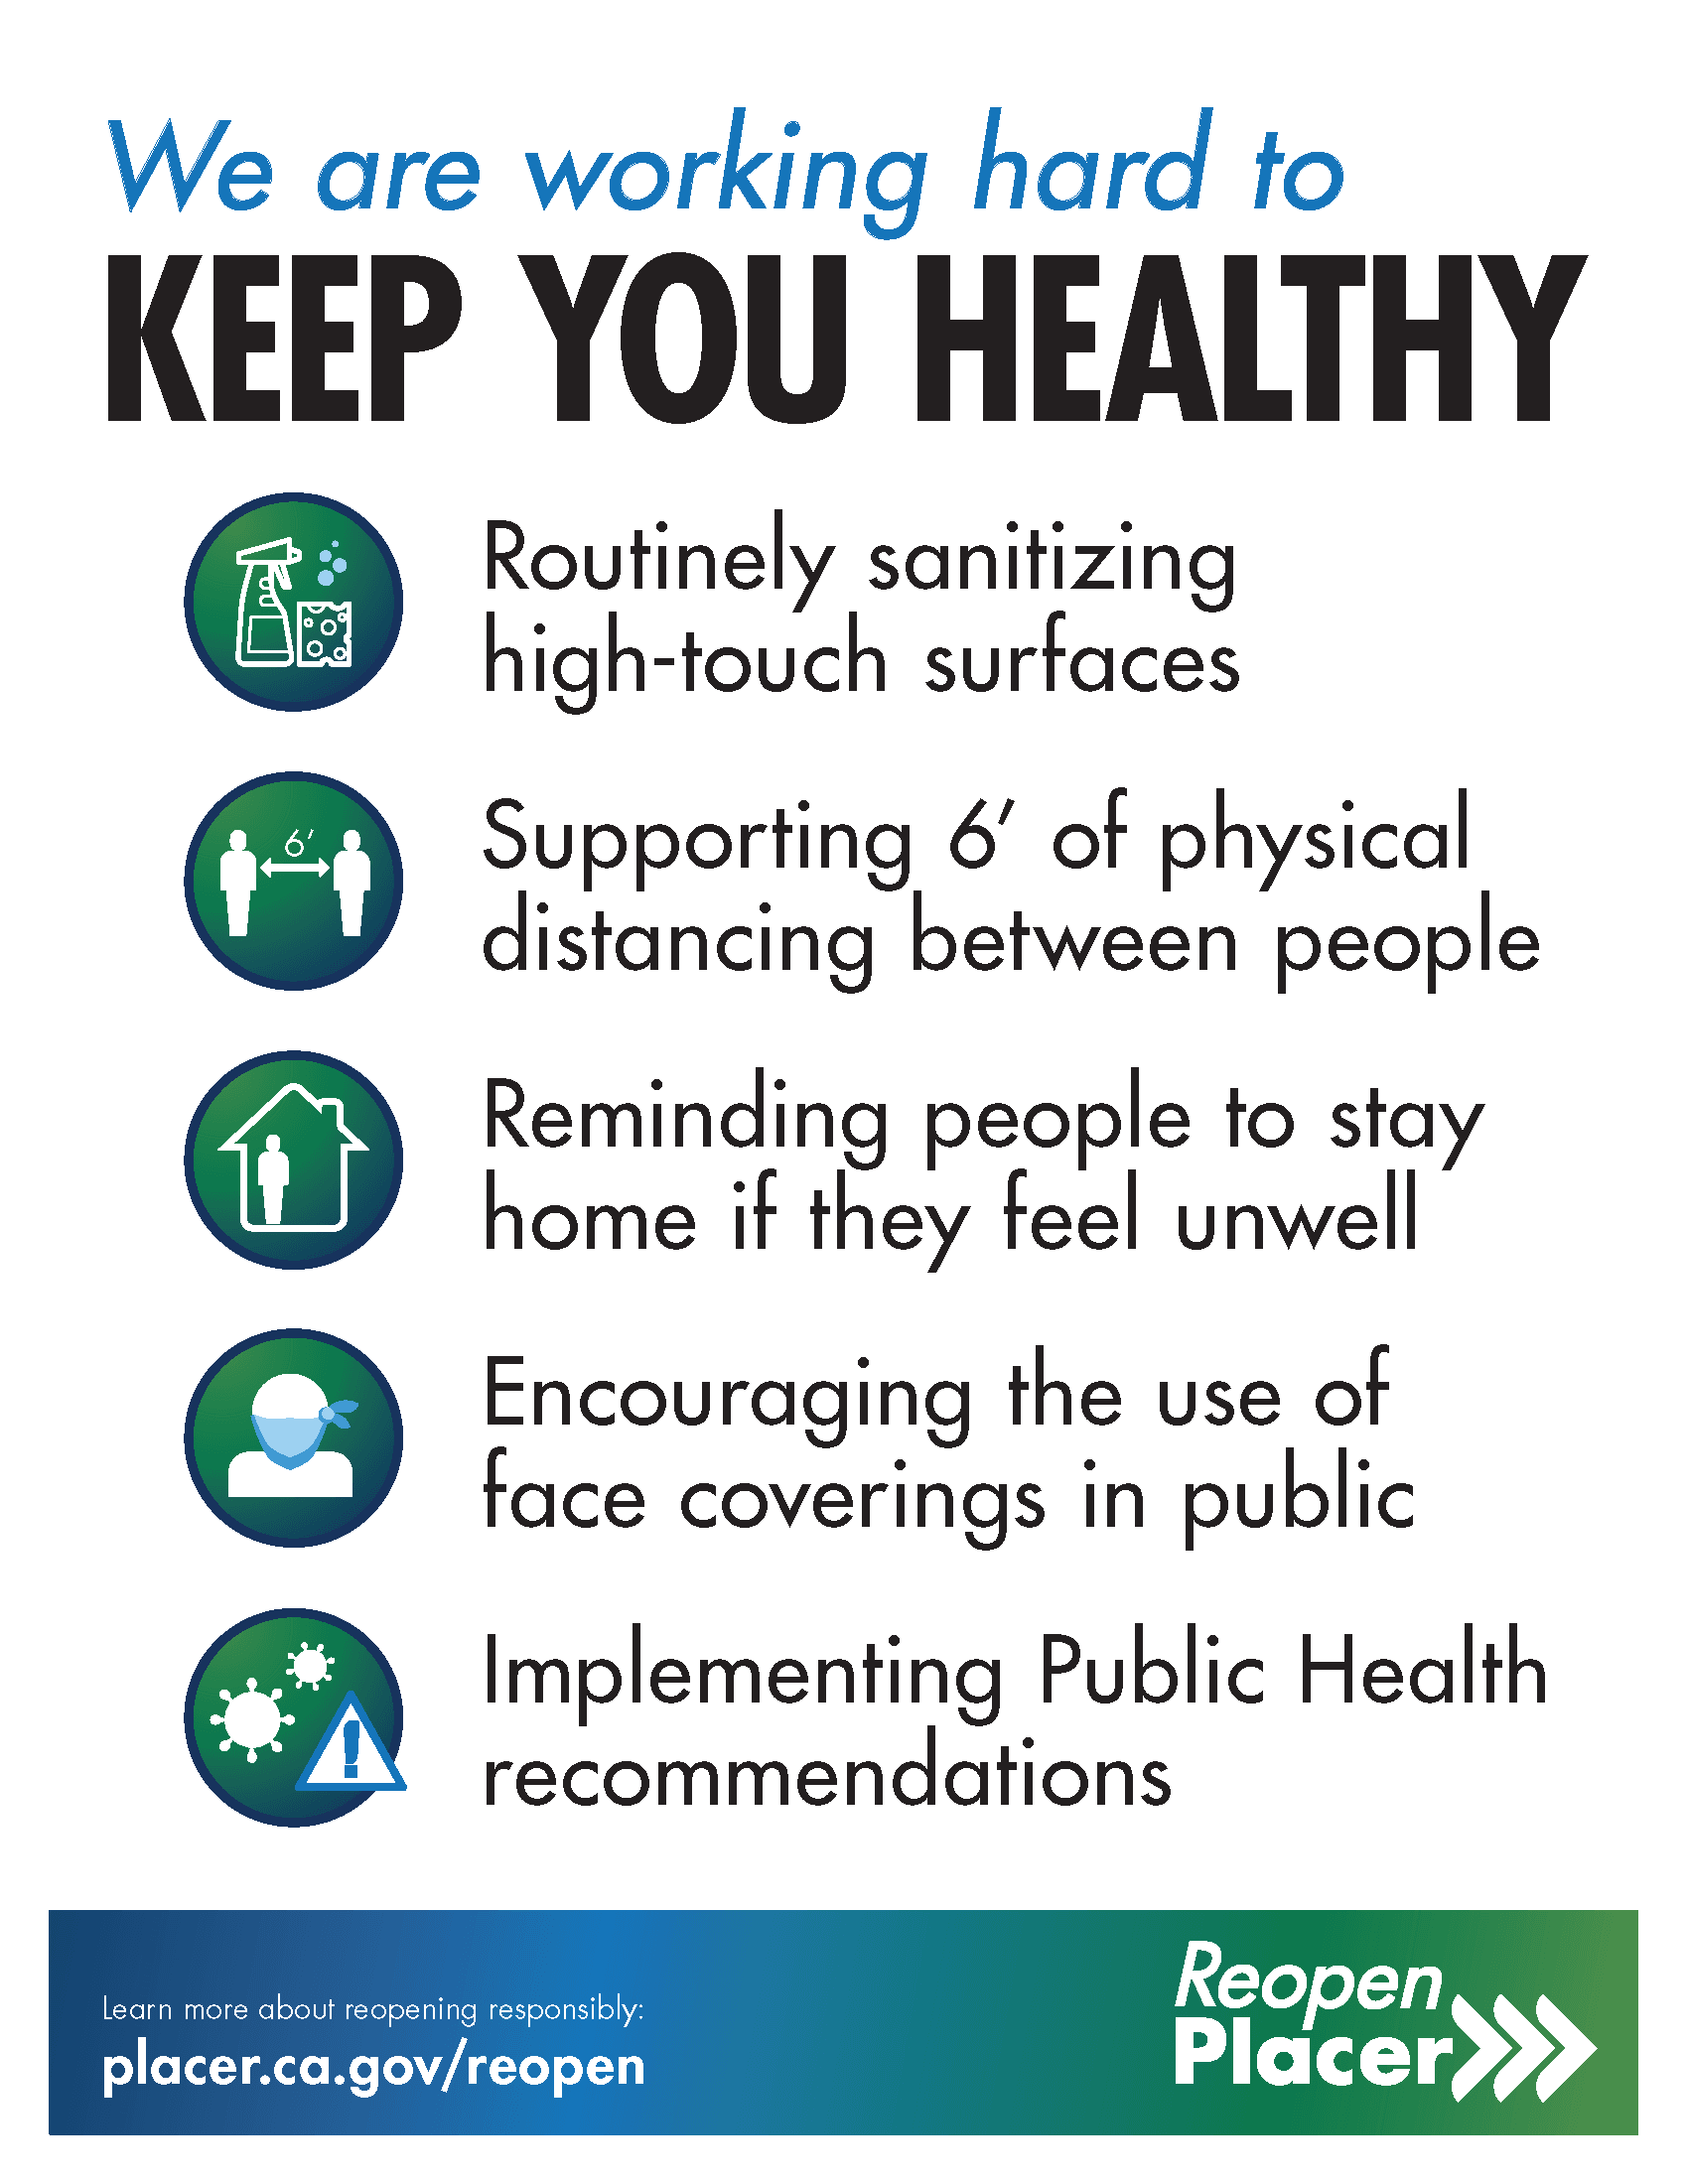 Keeping You Healthy Detail Opens in new window